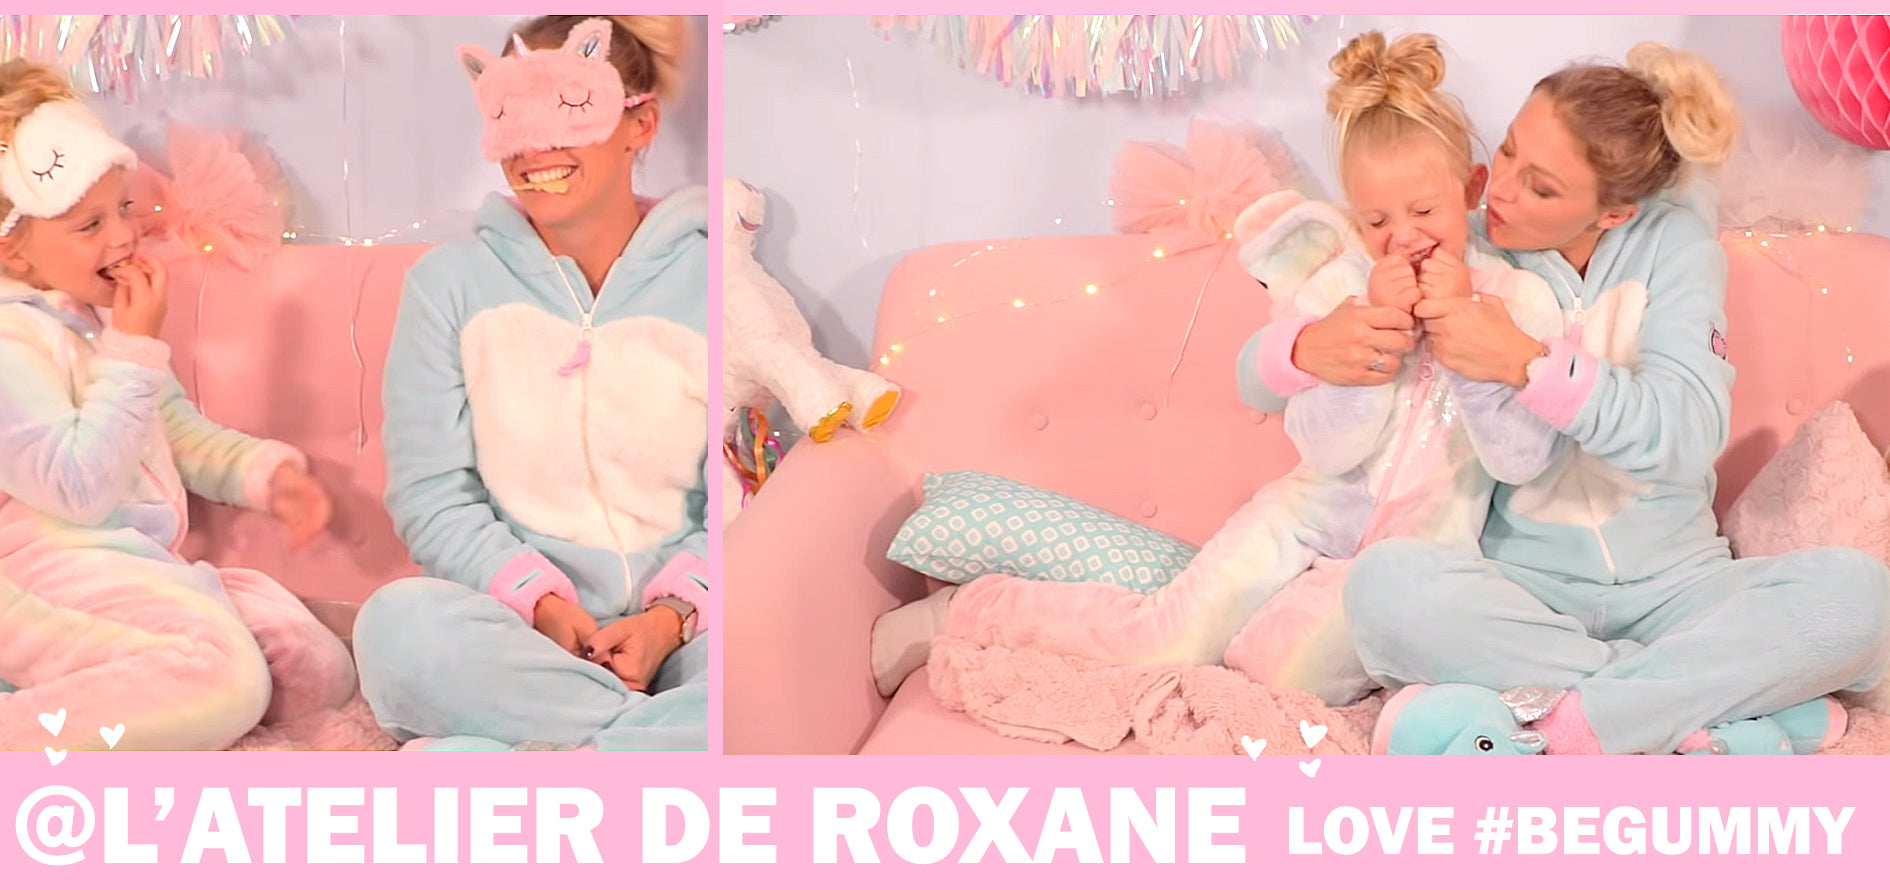 @L'atelier de Roxane Love BEGUMMY !